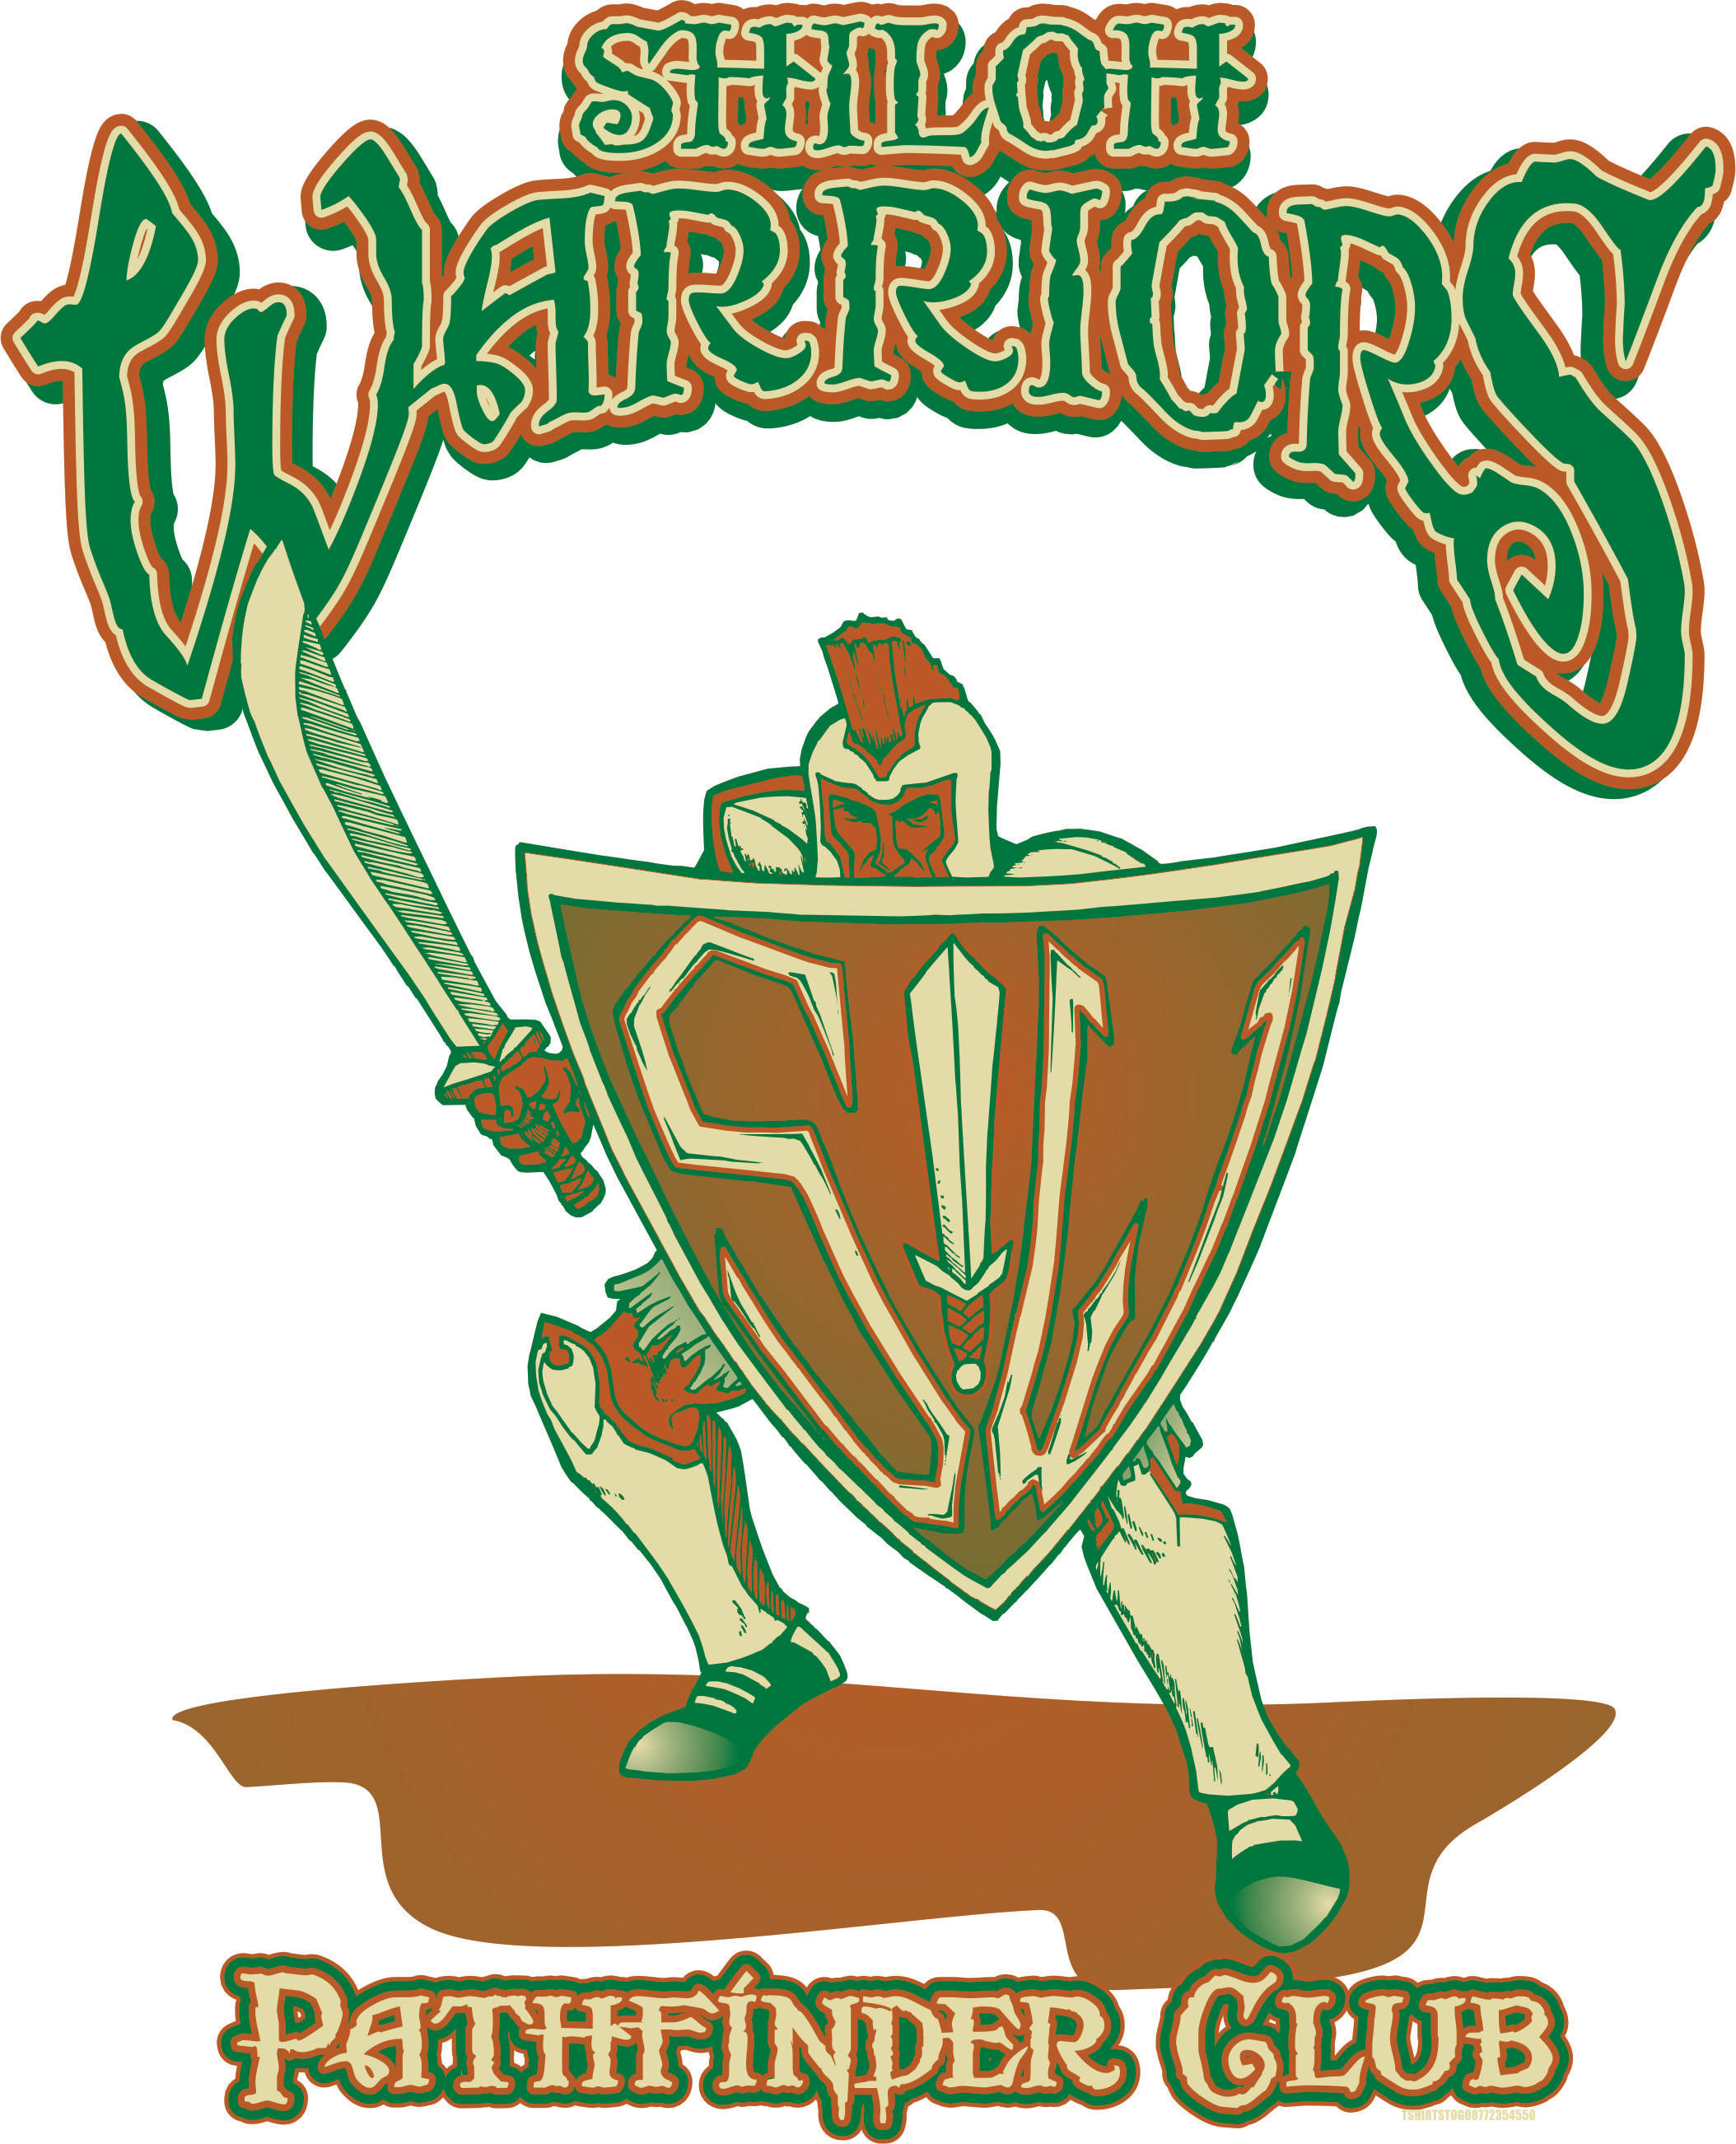 Shiloh Warriors logo full